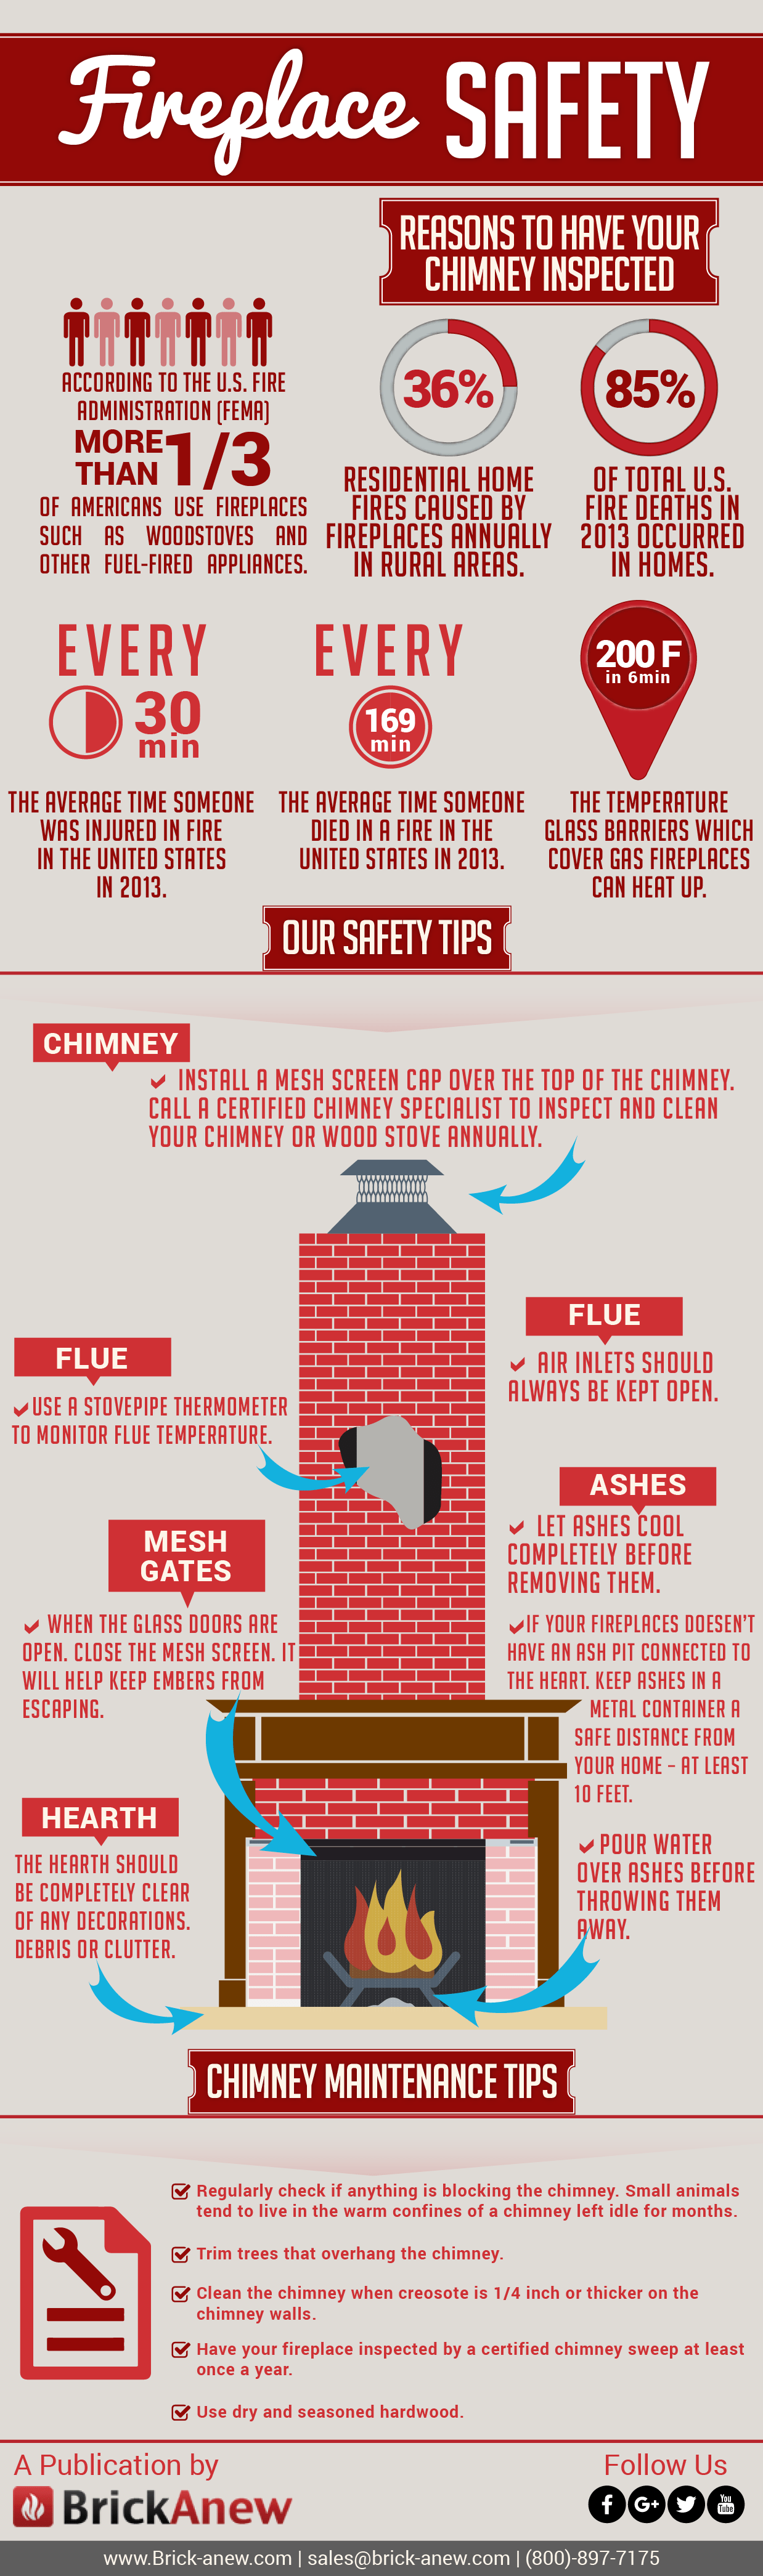 Fireplace Safety - Infographic - Safely Heating Your Home This Winter Latest Posts  Heating System Infographic Winter